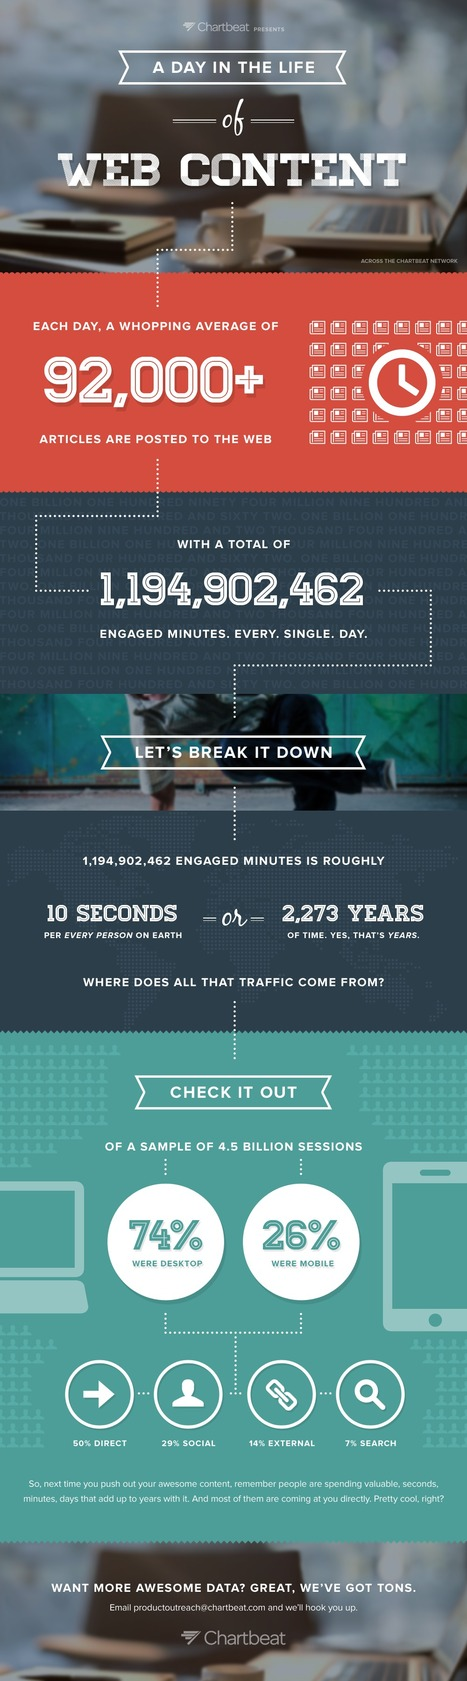 Infographic: A Day in the Life of Web Content | SpisanieTO | Scoop.it